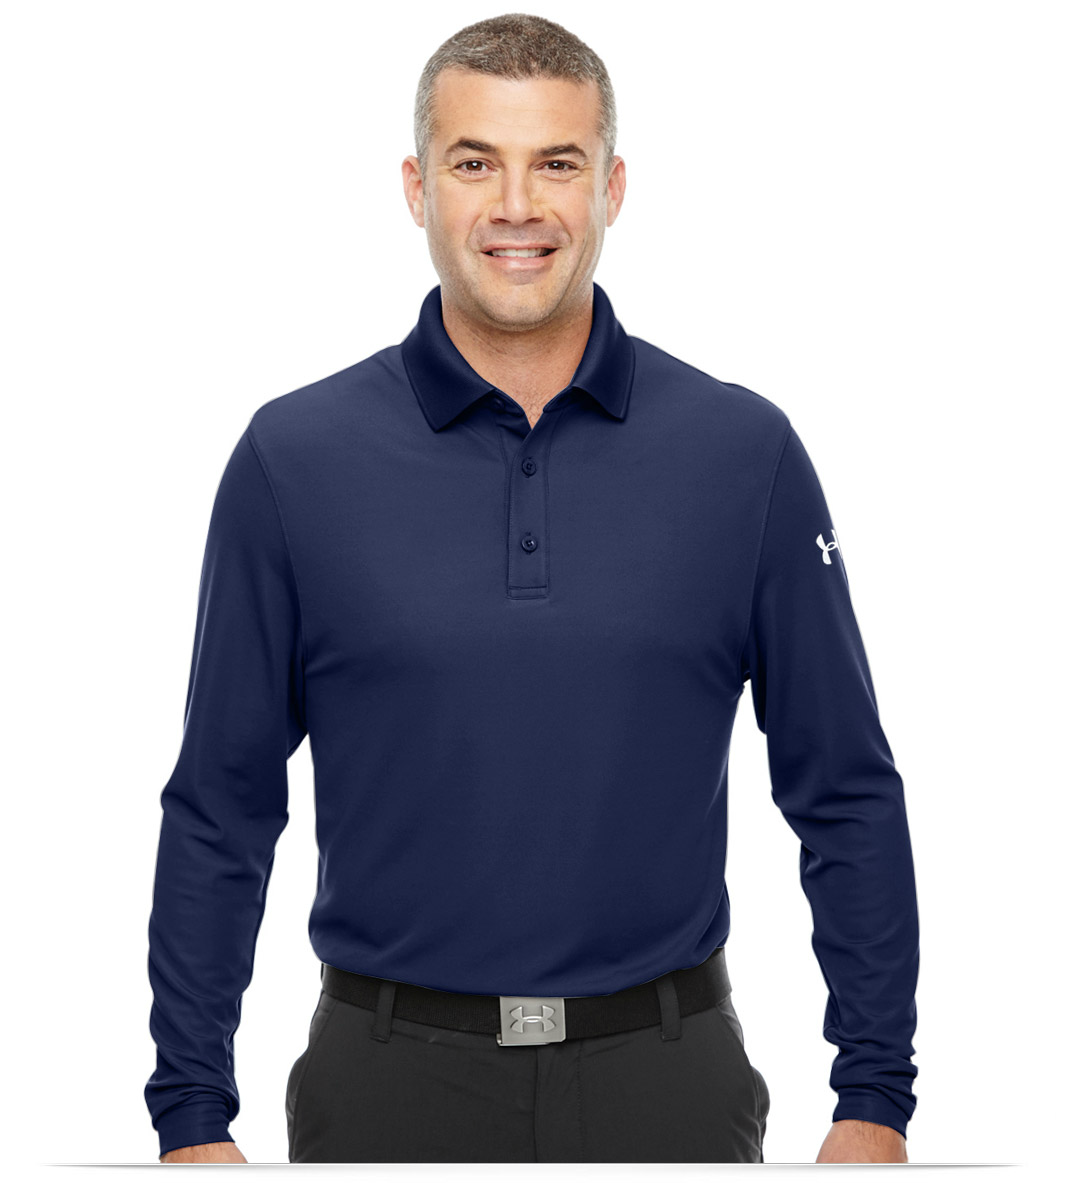 b62ed93eaba Custom Under Armour Men s Performance Long Sleeve Polo